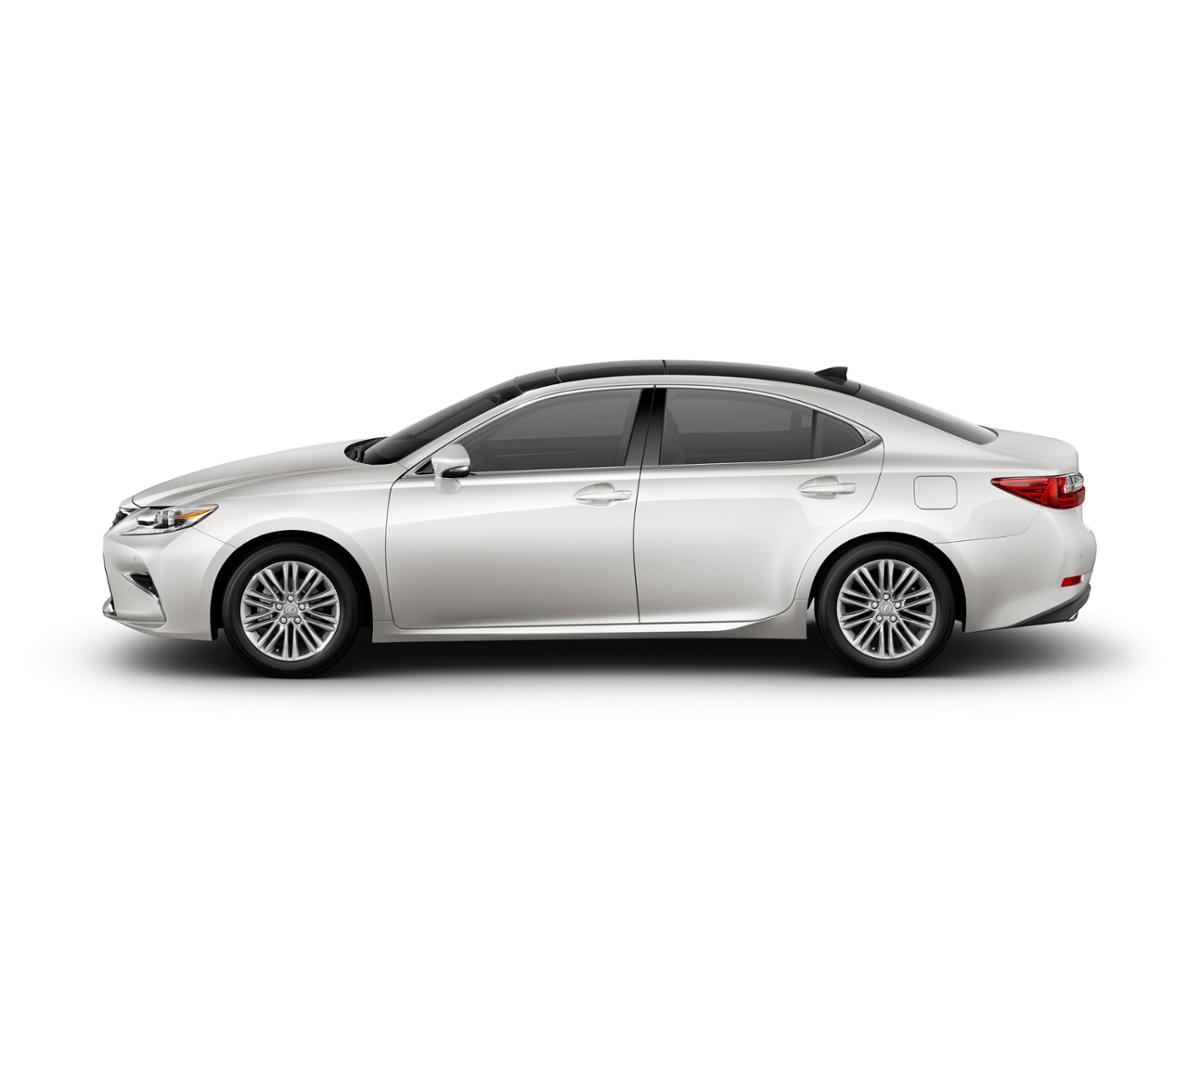 2017 Lexus ES 350 Vehicle Photo in Las Vegas, NV 89146